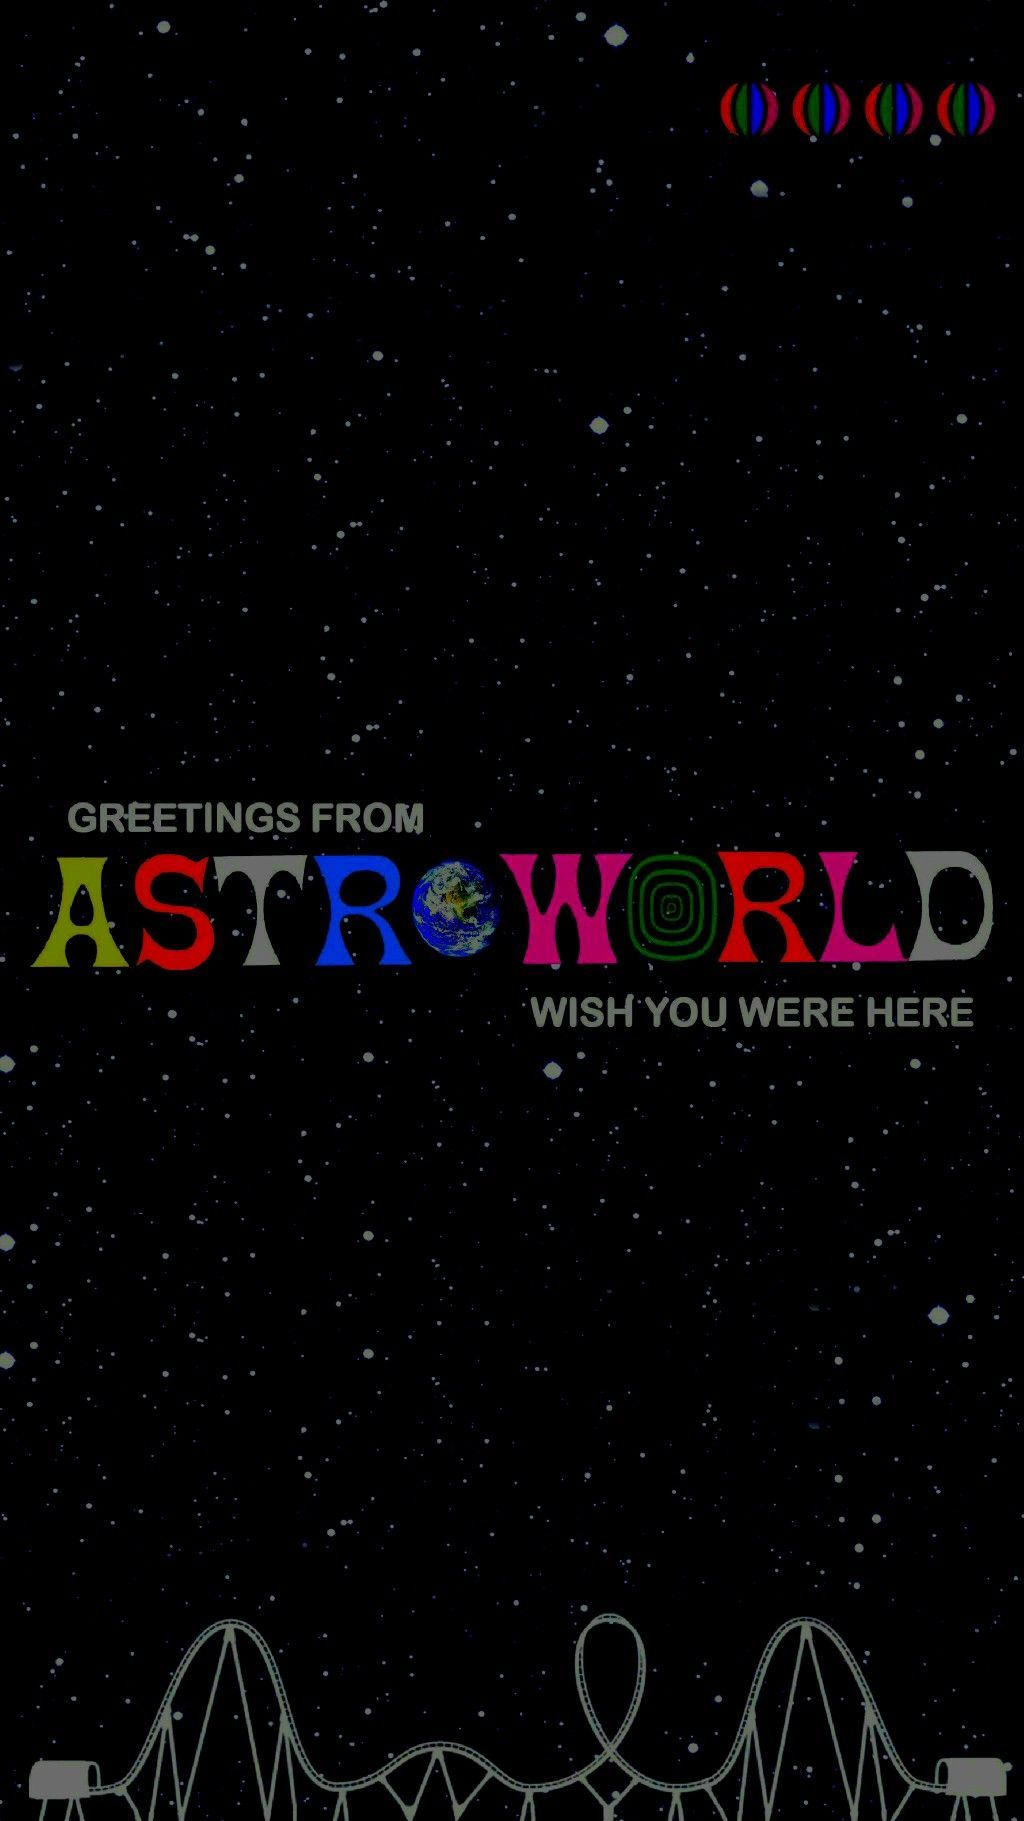 Astrowrld Fever Travisscottwallpapers Hintergrund Iphone Hintergrundbilder Iphone Tumblr Hintergrunde